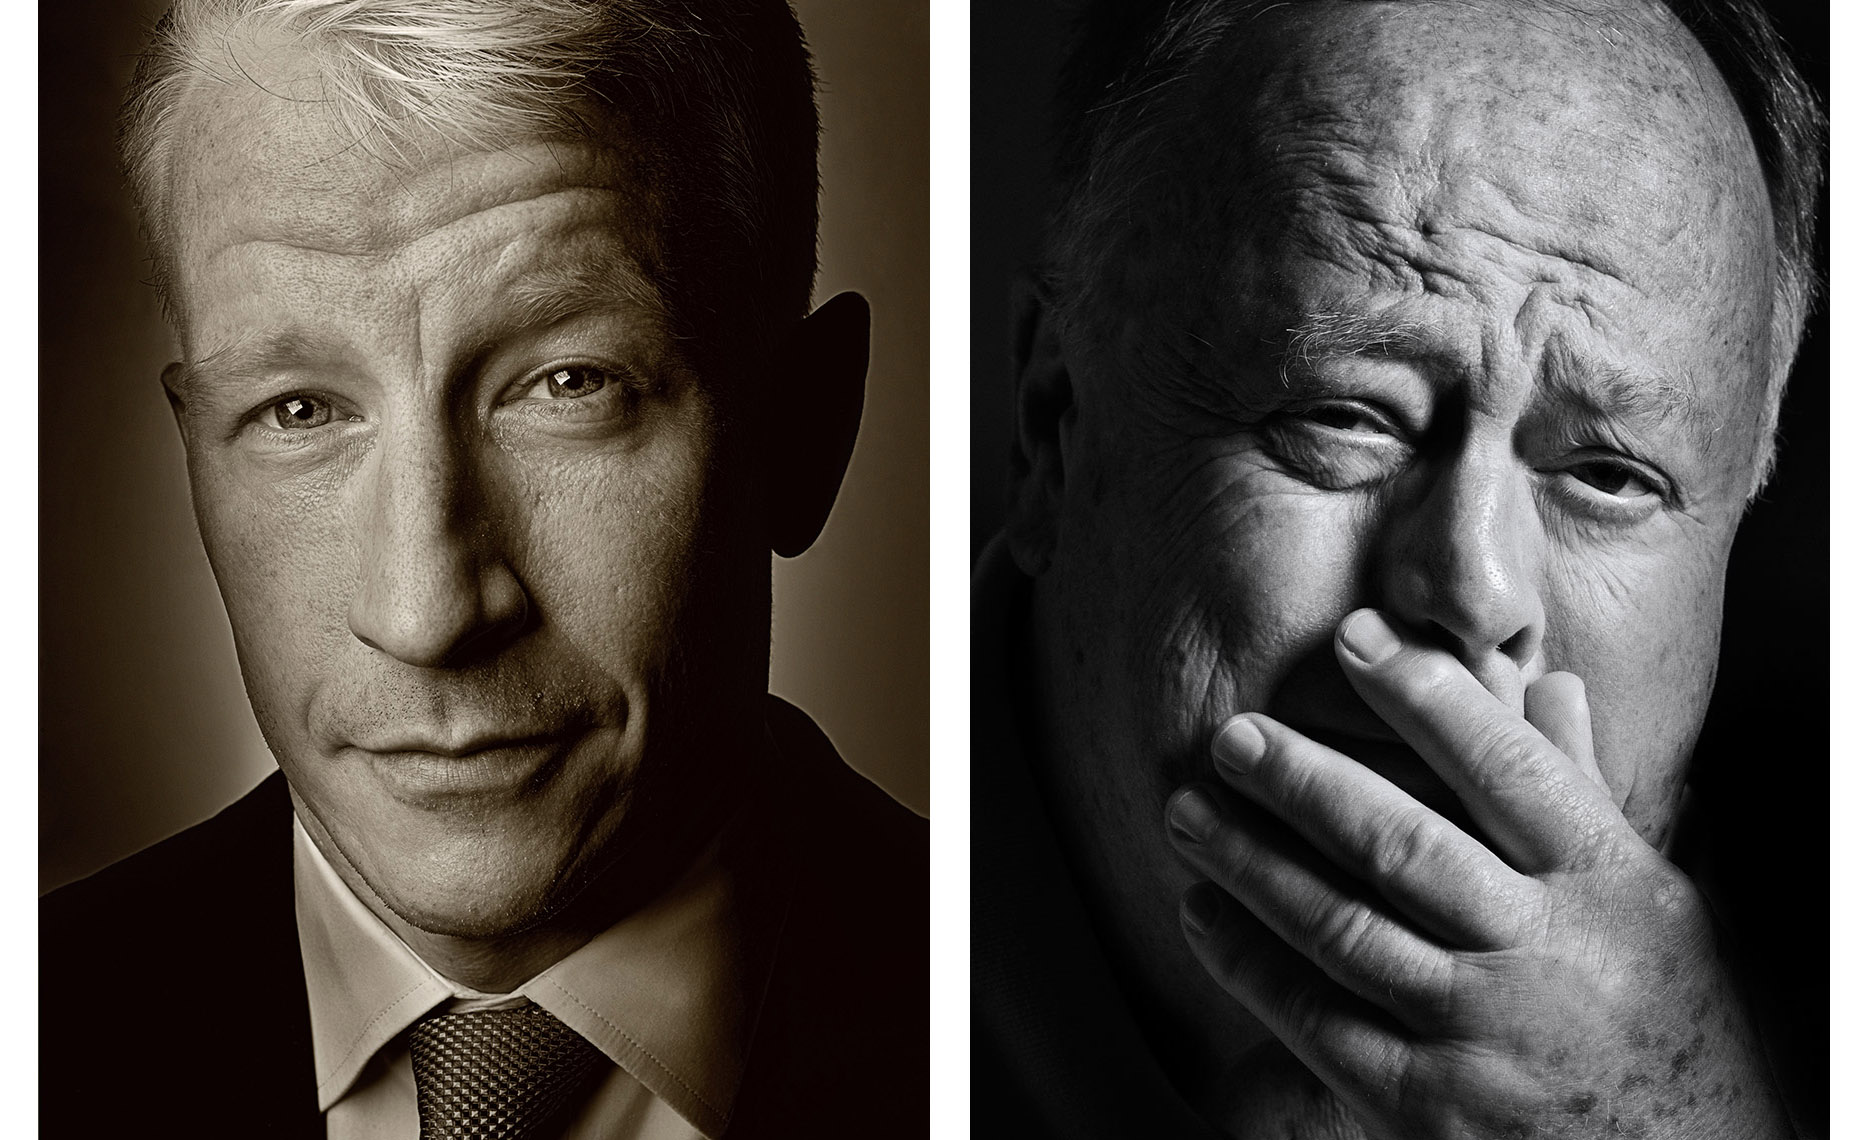 Portraits of Anderson Cooper and Max Cleland | Washington DC Photographer Aaron Clamage